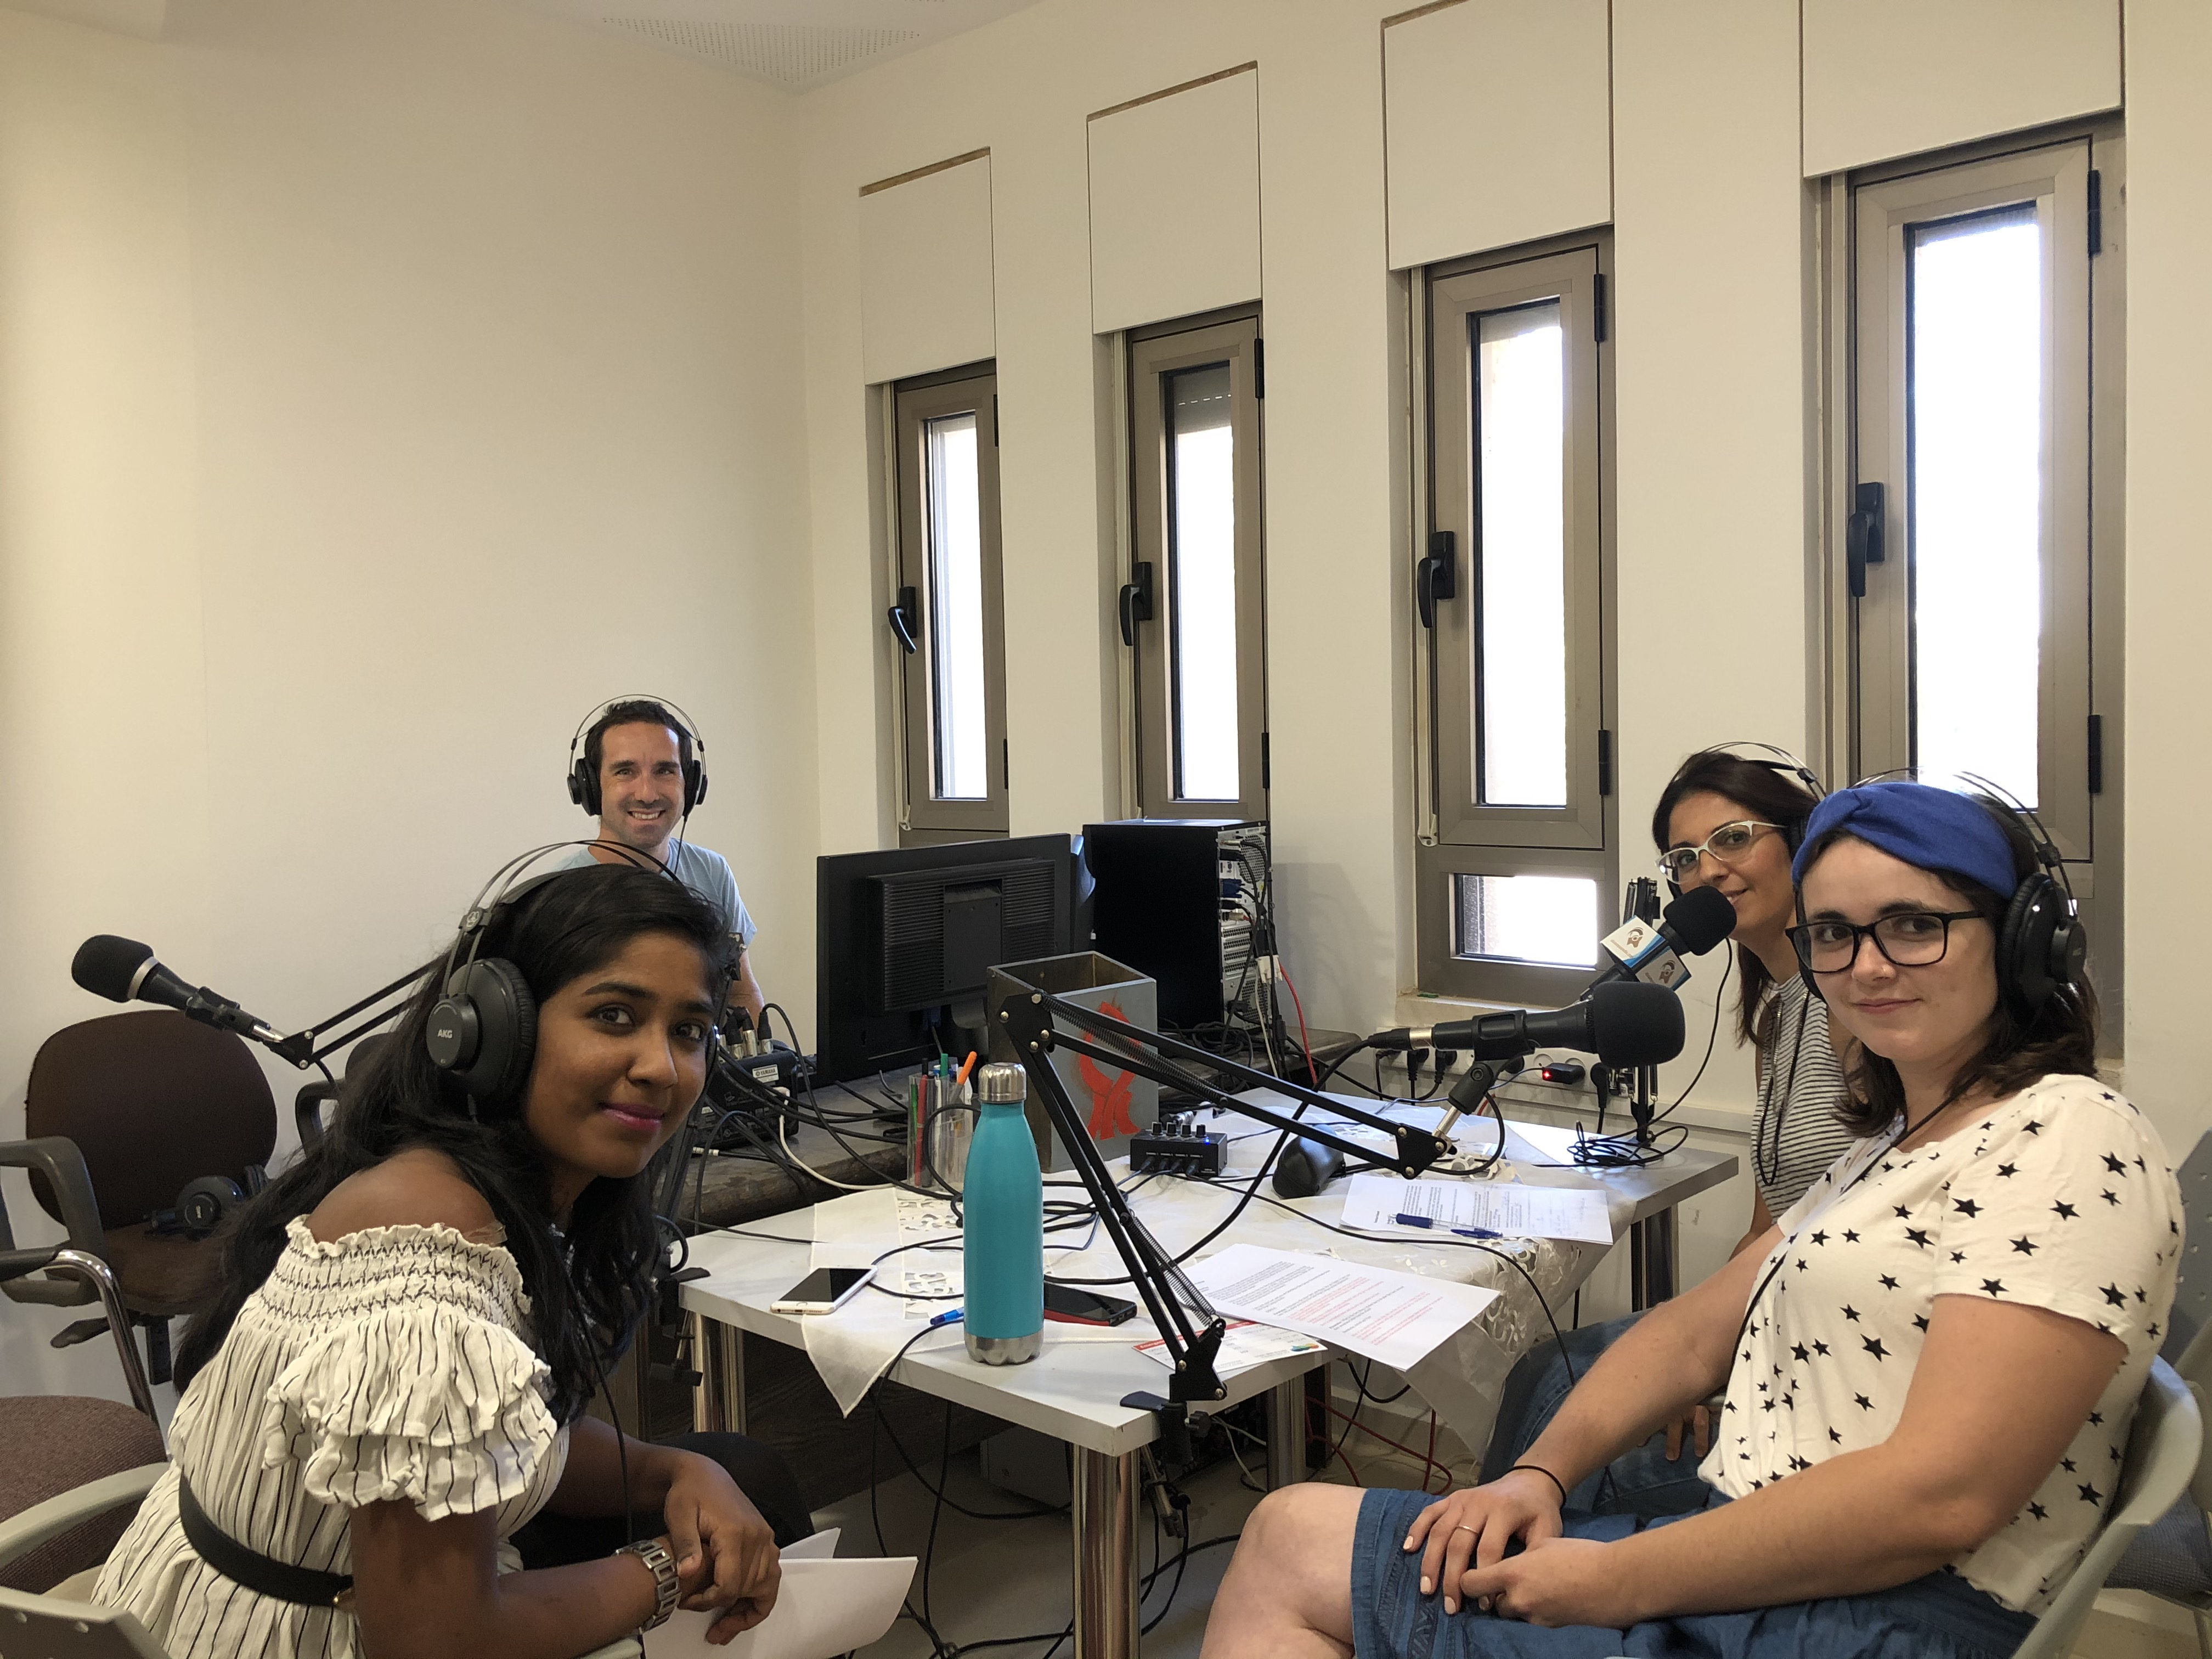 Sede Boker Campus Orientation podcast1.JPG